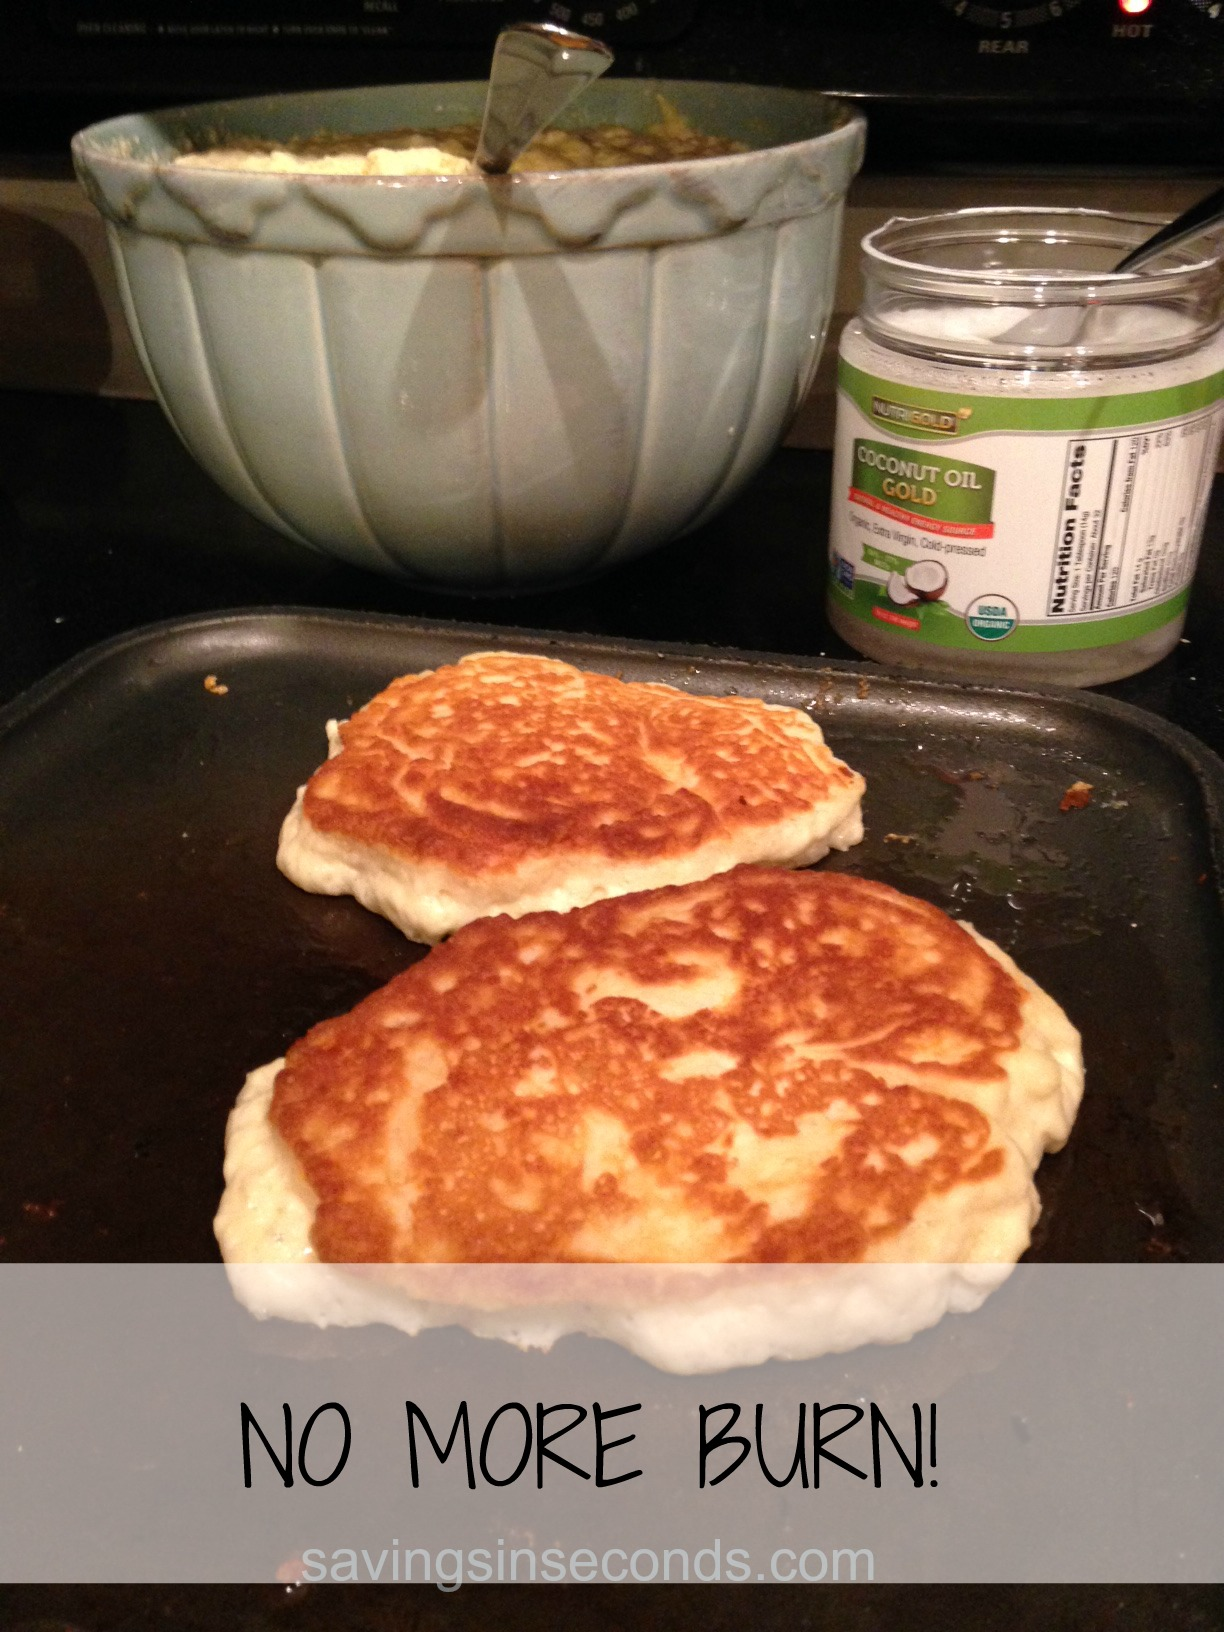 No more burned pancakes - savingsinseconds.com